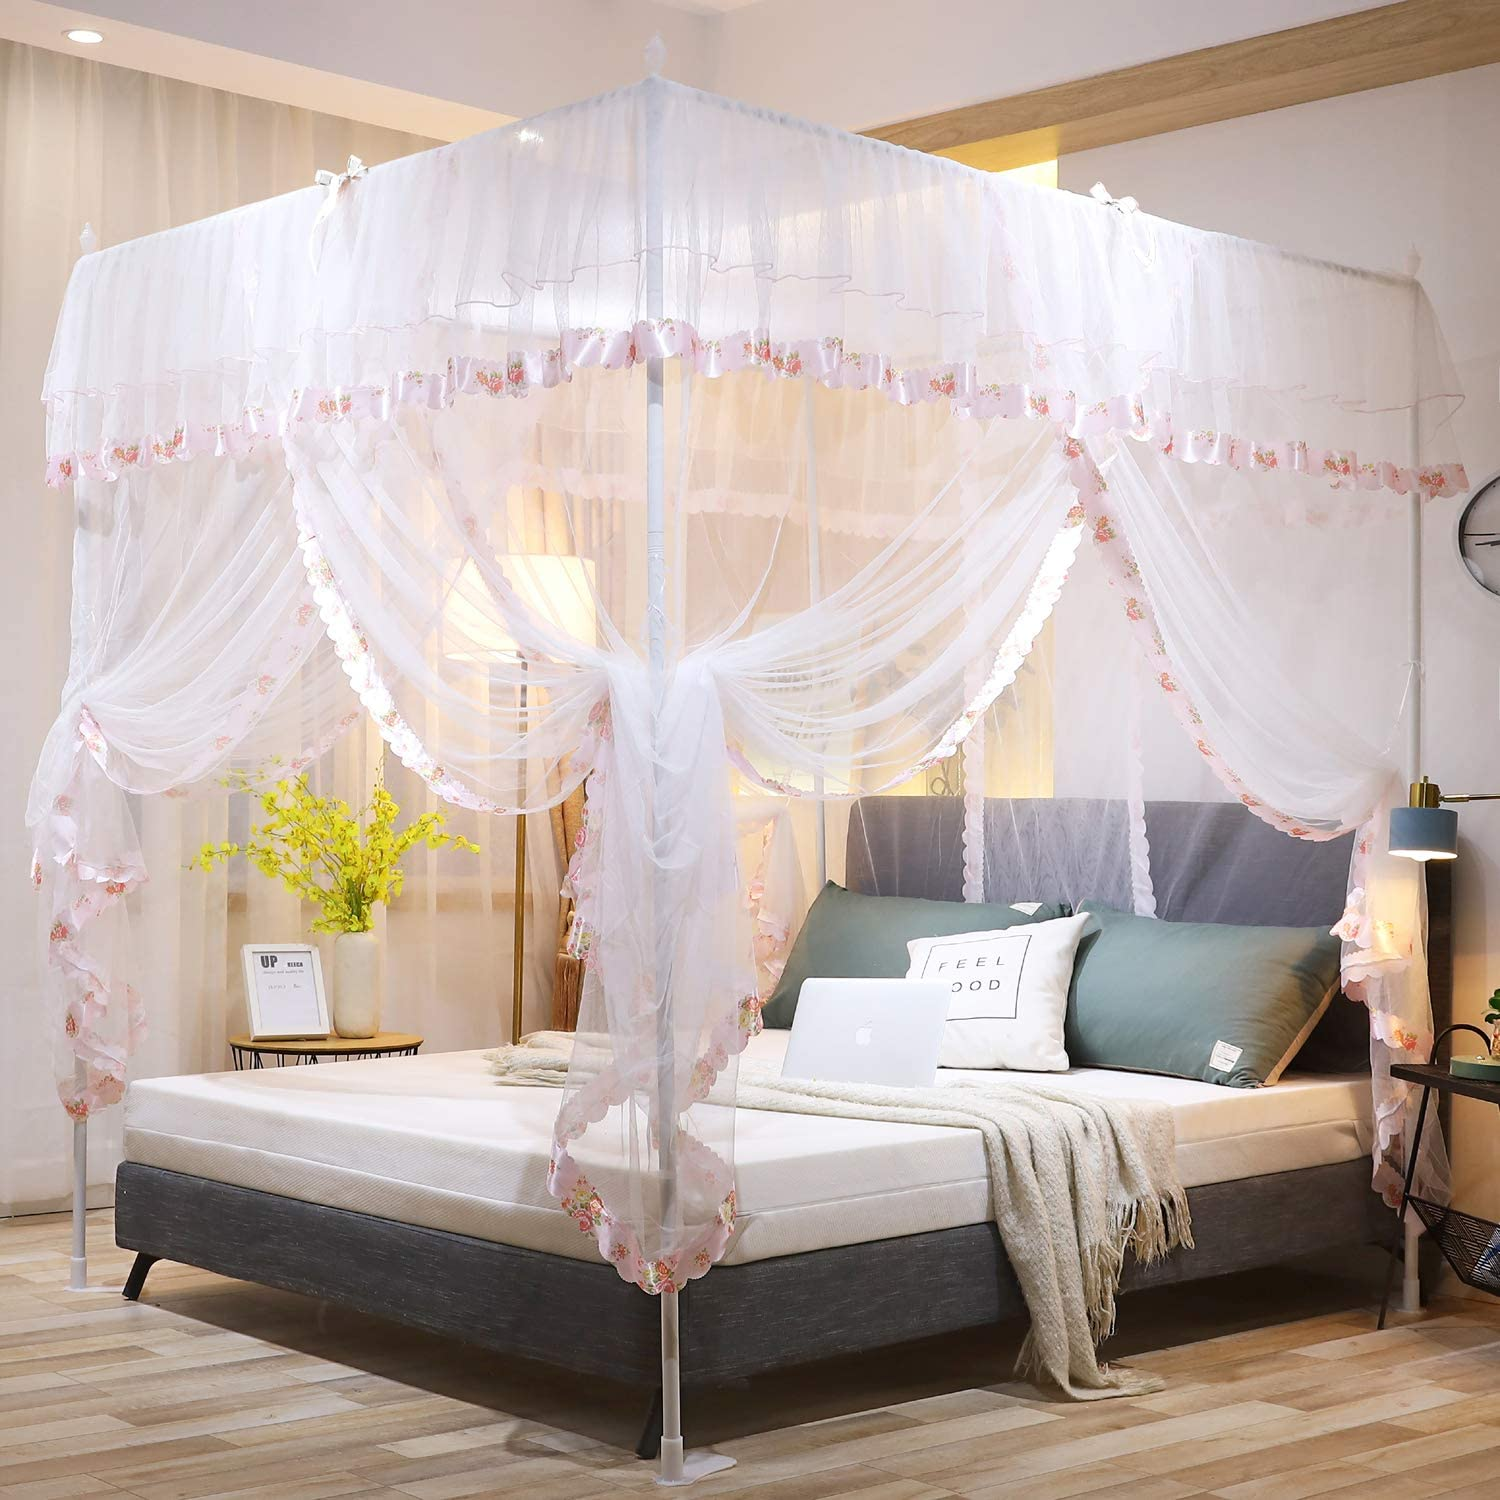 Twin, Pink Mengersi 4 Corners Post Canopy Bed Curtain for Girls Boys Adults Gift